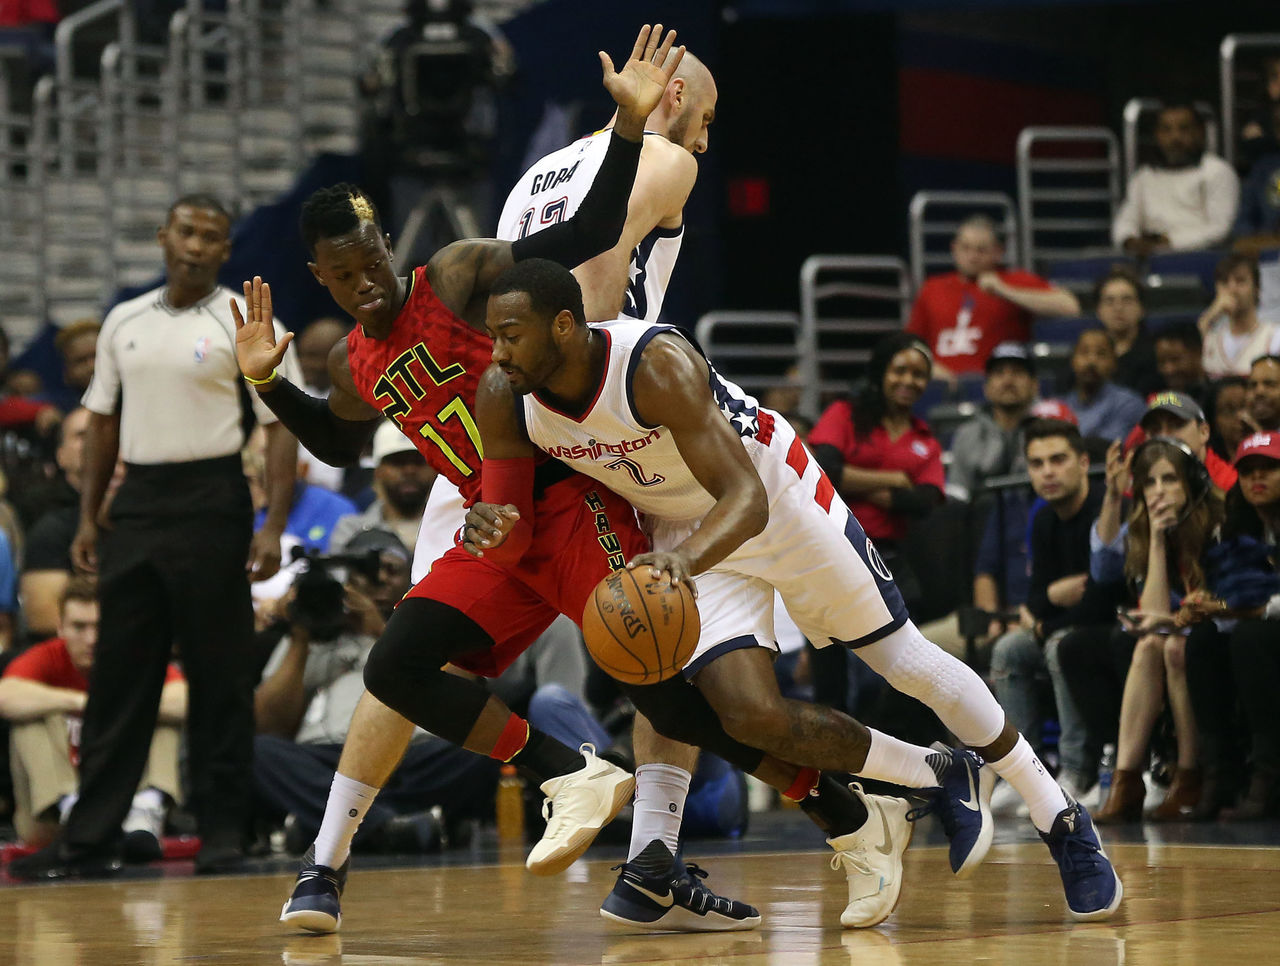 Cropped 2017 04 26t230754z 1897697540 nocid rtrmadp 3 nba playoffs atlanta hawks at washington wizards